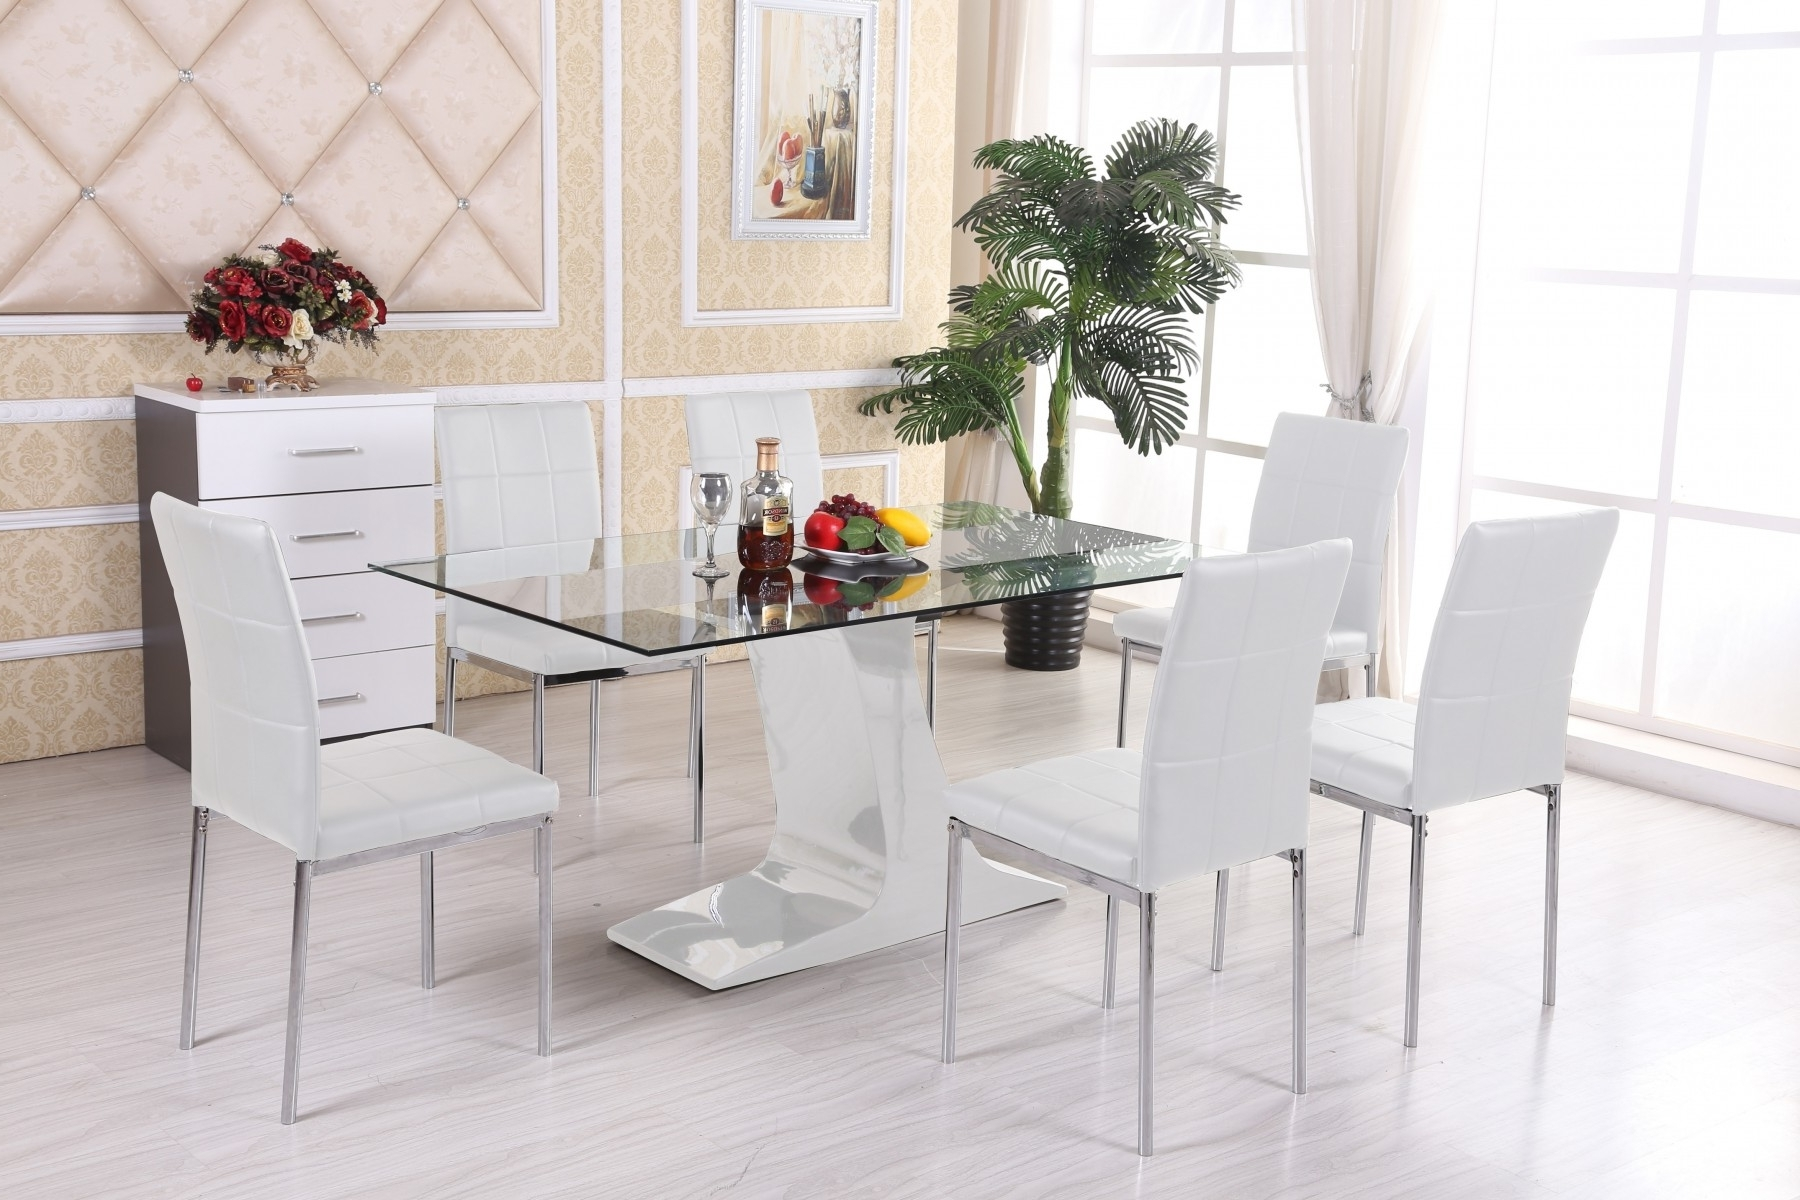 Glass Dining Tables With 6 Chairs Pertaining To Most Recently Released 4 Optimal Choices In Glass Dining Table And Chairs – Blogbeen (View 7 of 25)